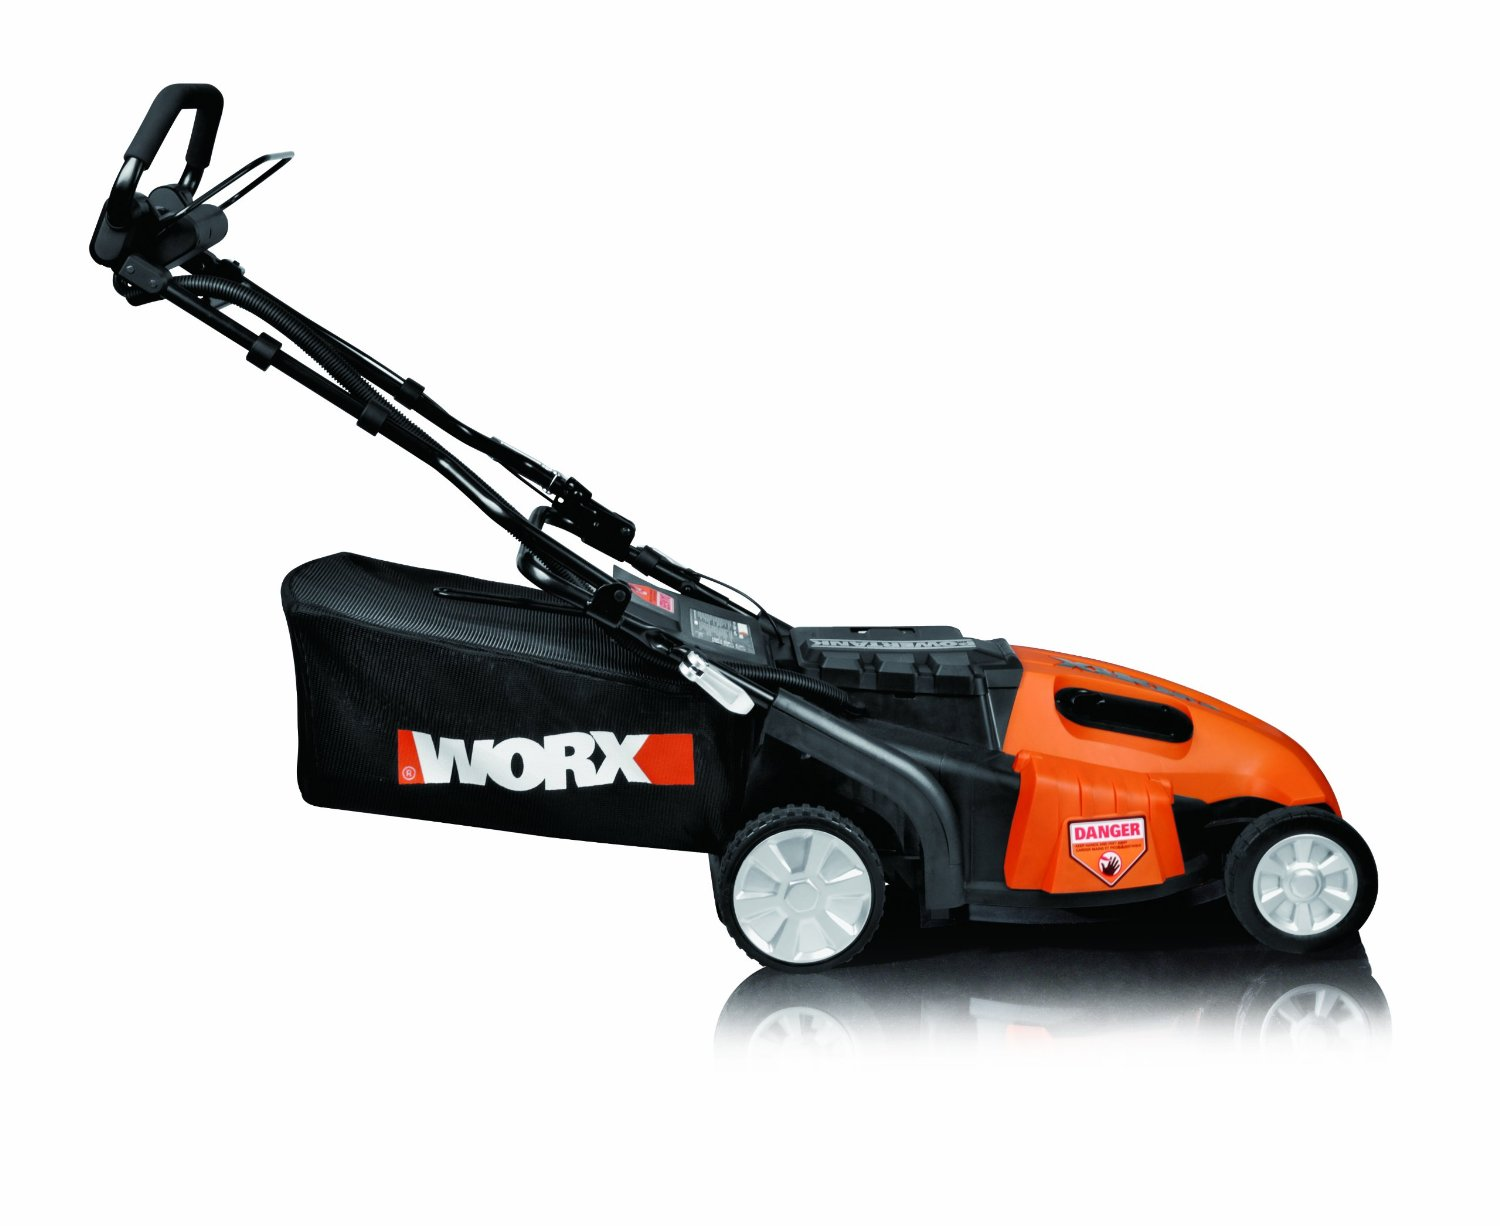 WORX WG789 Review